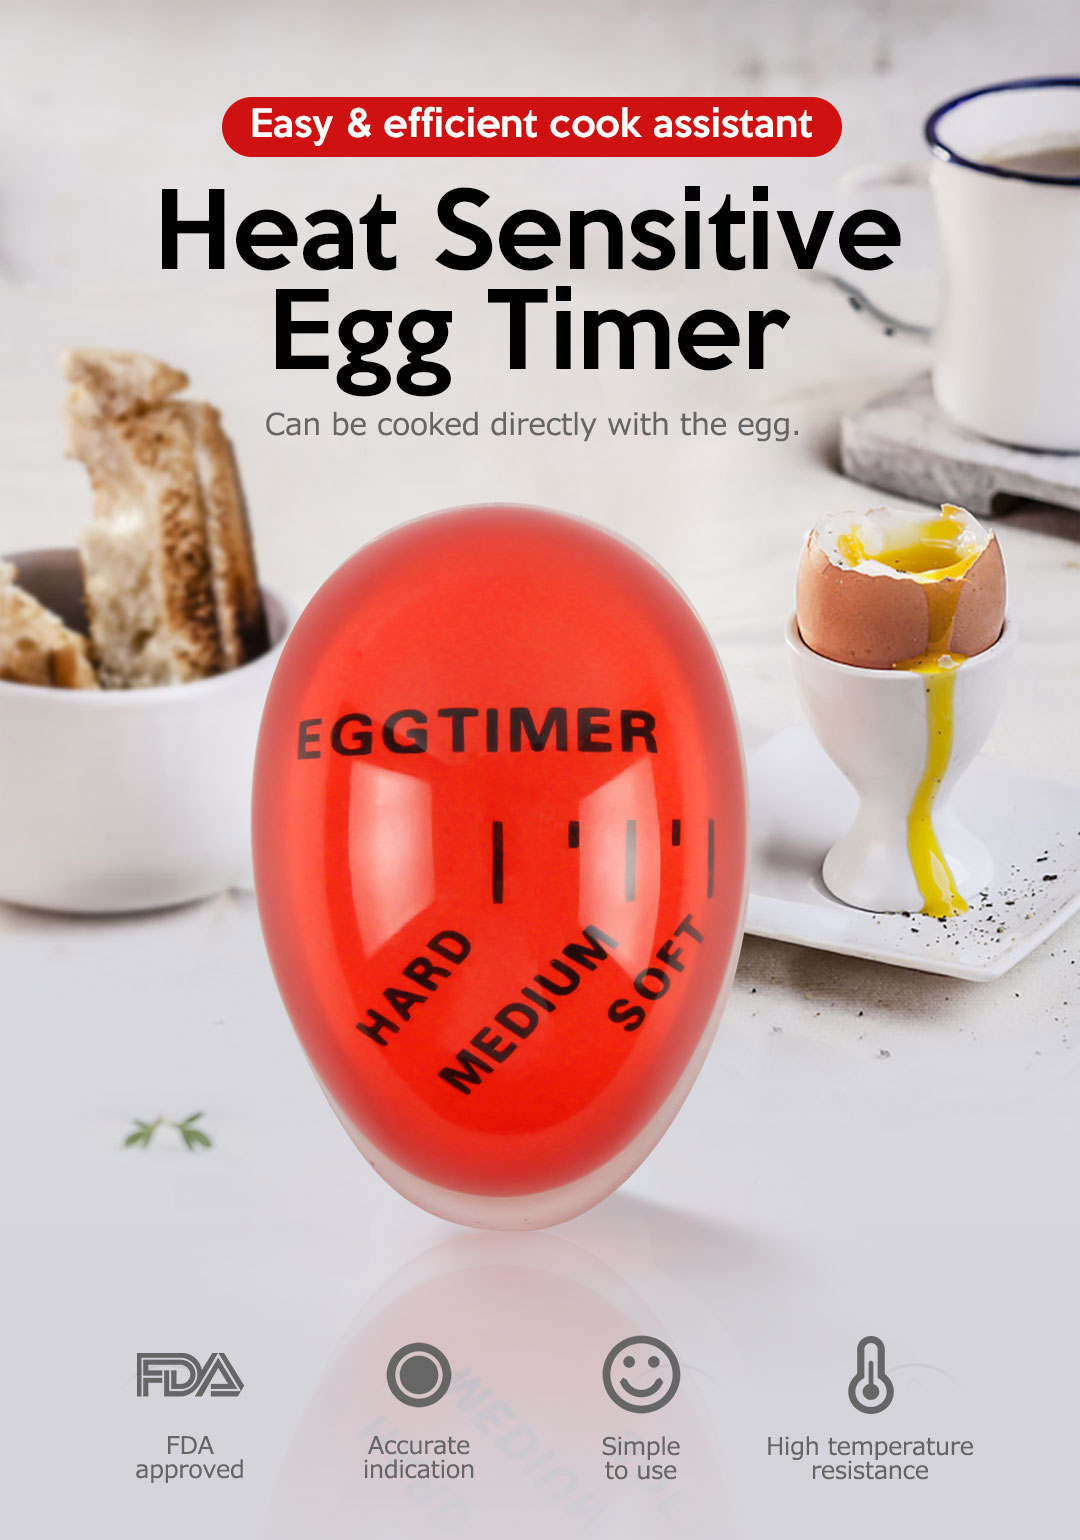 2PCS Smart Egg Timer For Boiling Soft or Hard Boiled Eggs Heat Sensitive Color Changing Eggs Cooking Kitchen Tool Timer BPA Free for Wife Christmas Gift Black Friday SALE 0